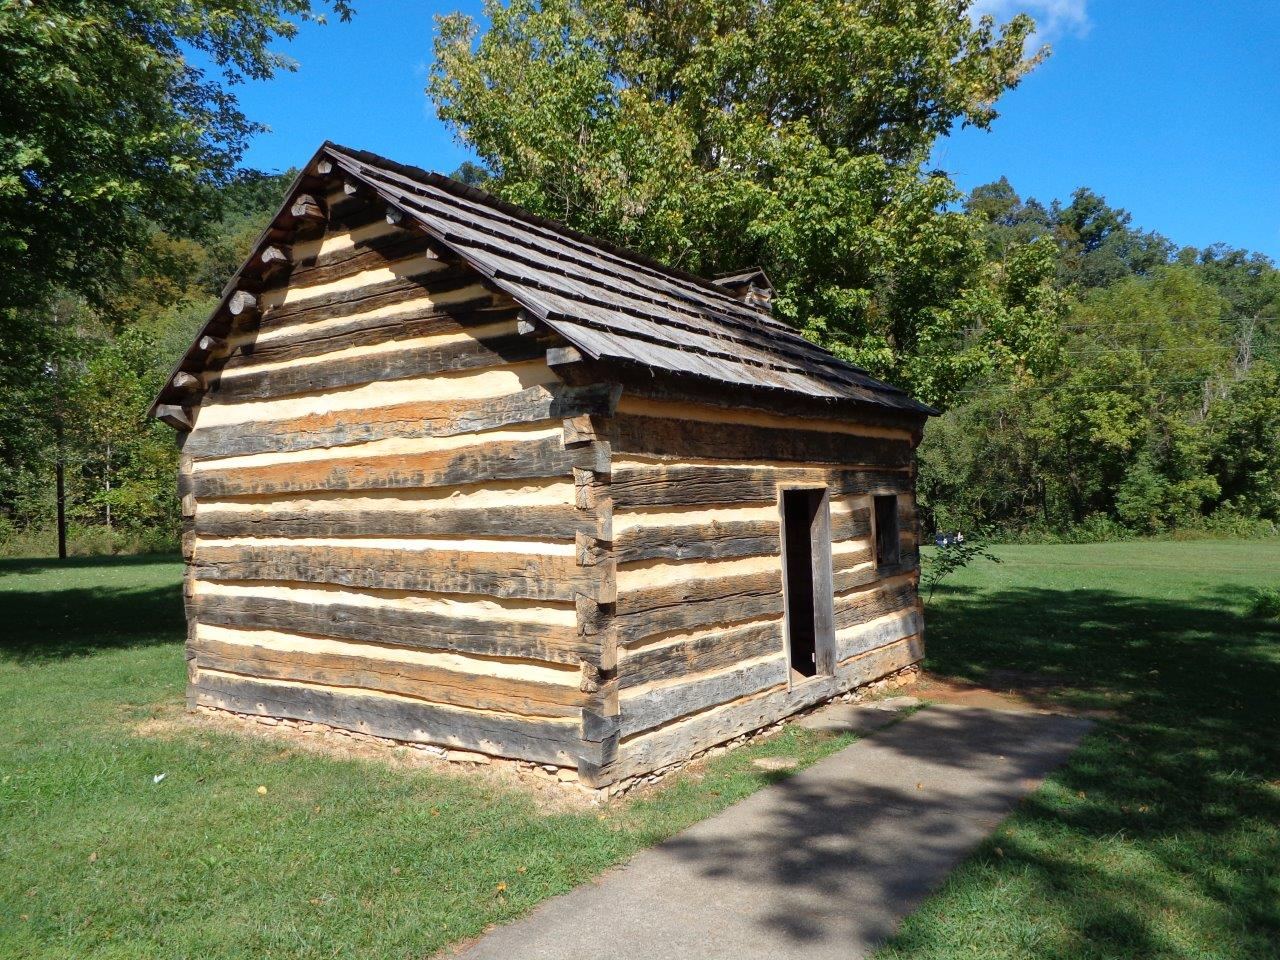 Abraham Lincoln boyhood home in Kentucky